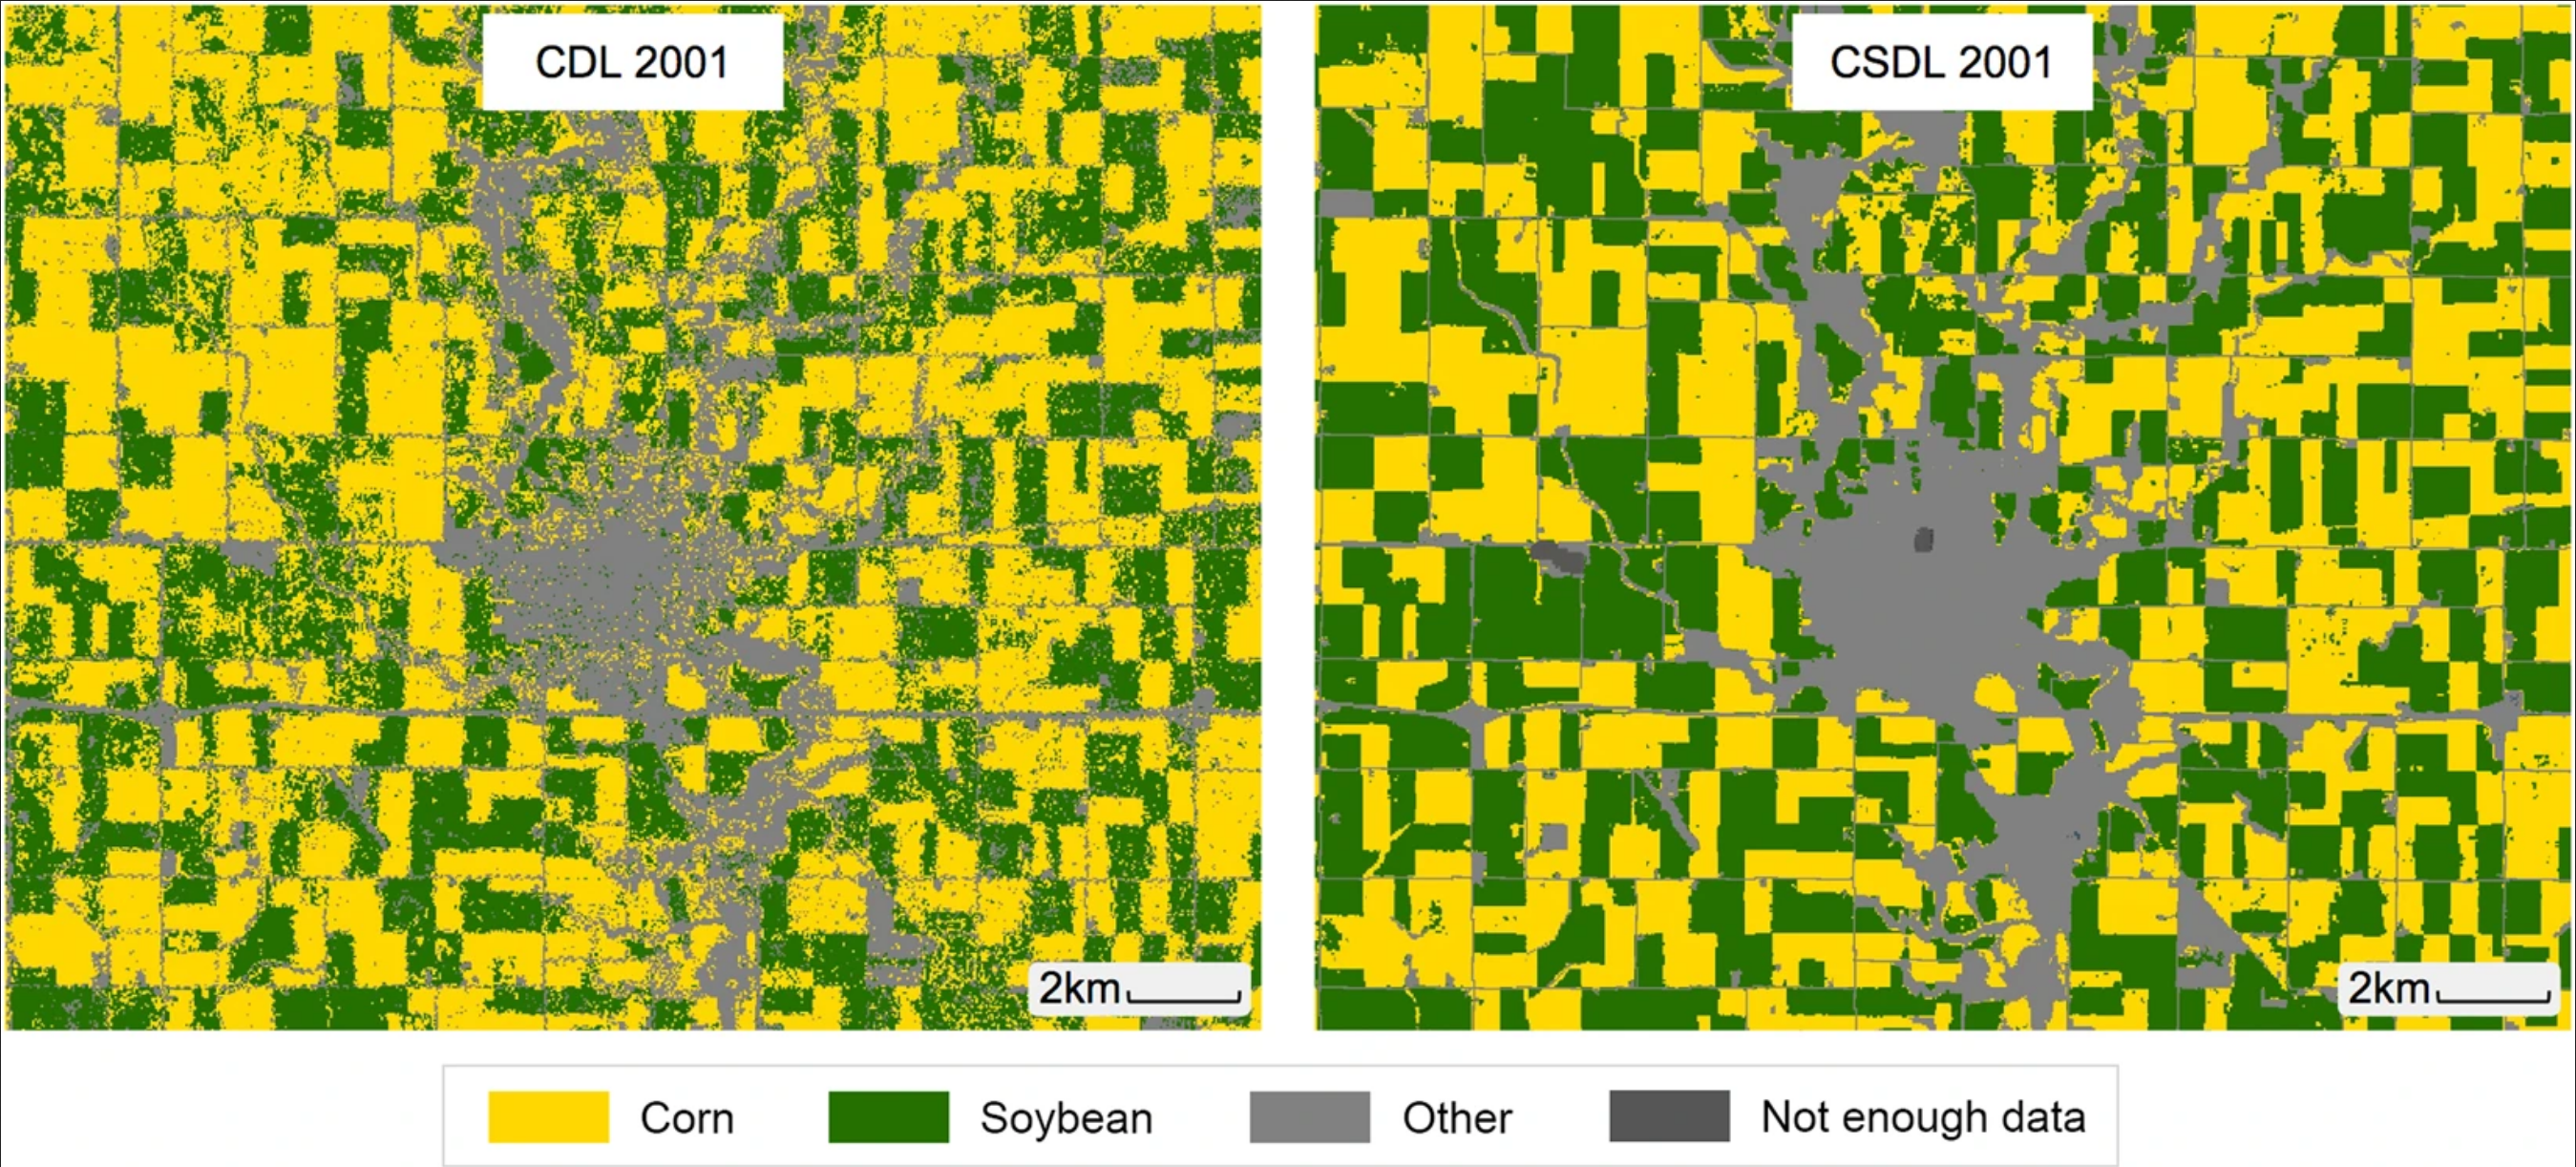 Corn and soybean classification around Webster City, Hamilton County, Iowa in 2001. The USDA's Cropland Data Layer is shown on the left and the author's re-vamped Corn-Soy Data Layer is on the right.